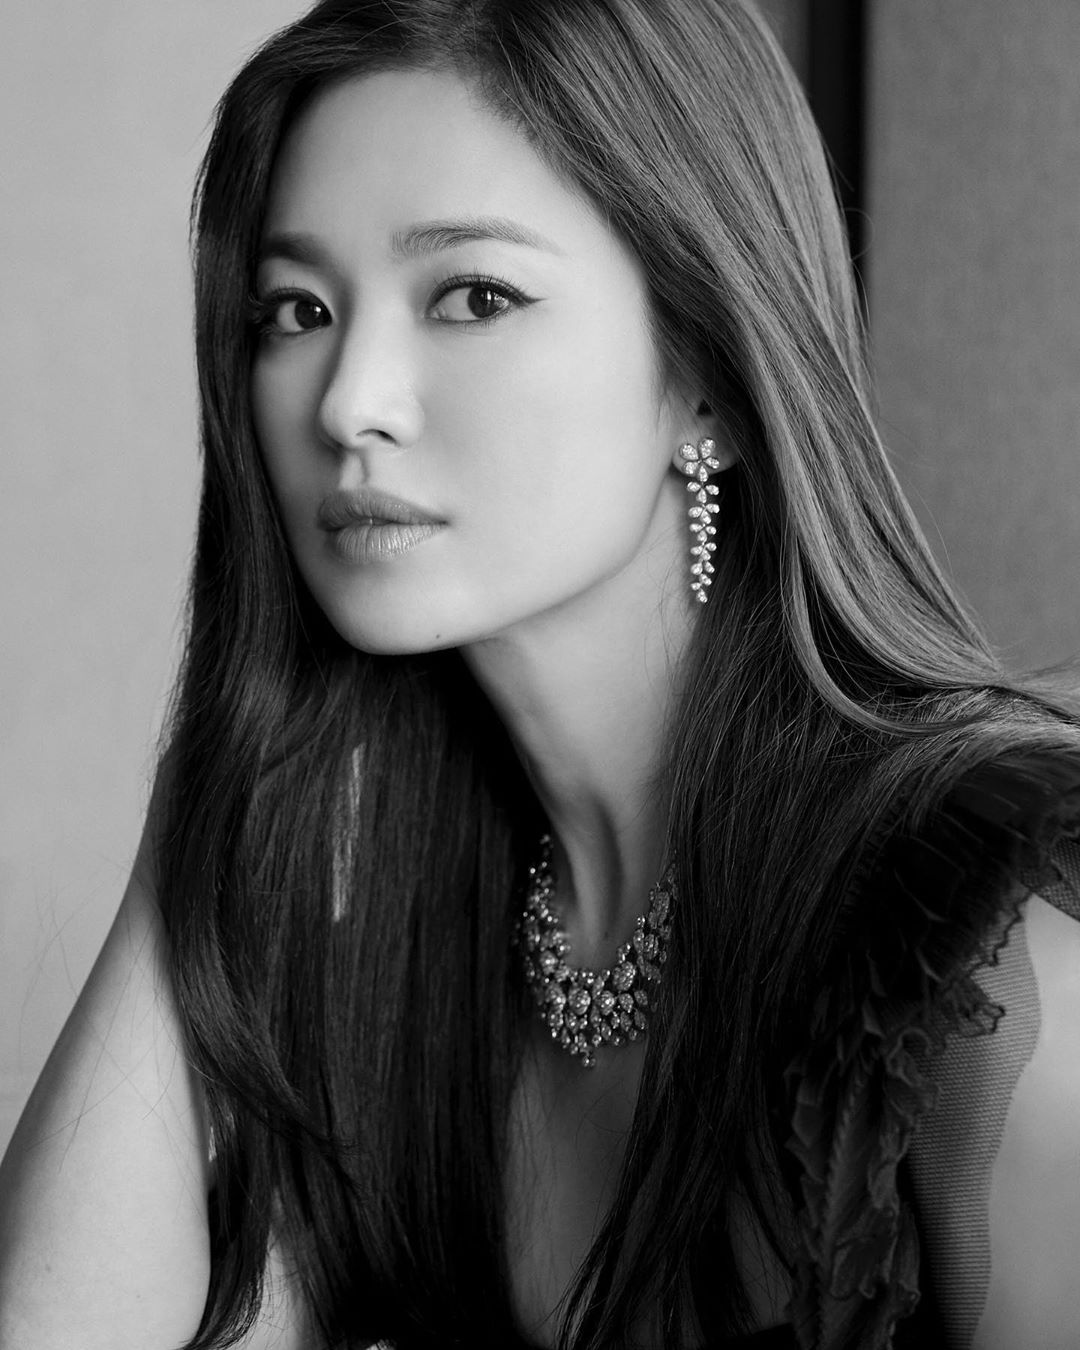 Song Hye-kyo South Korean Actress